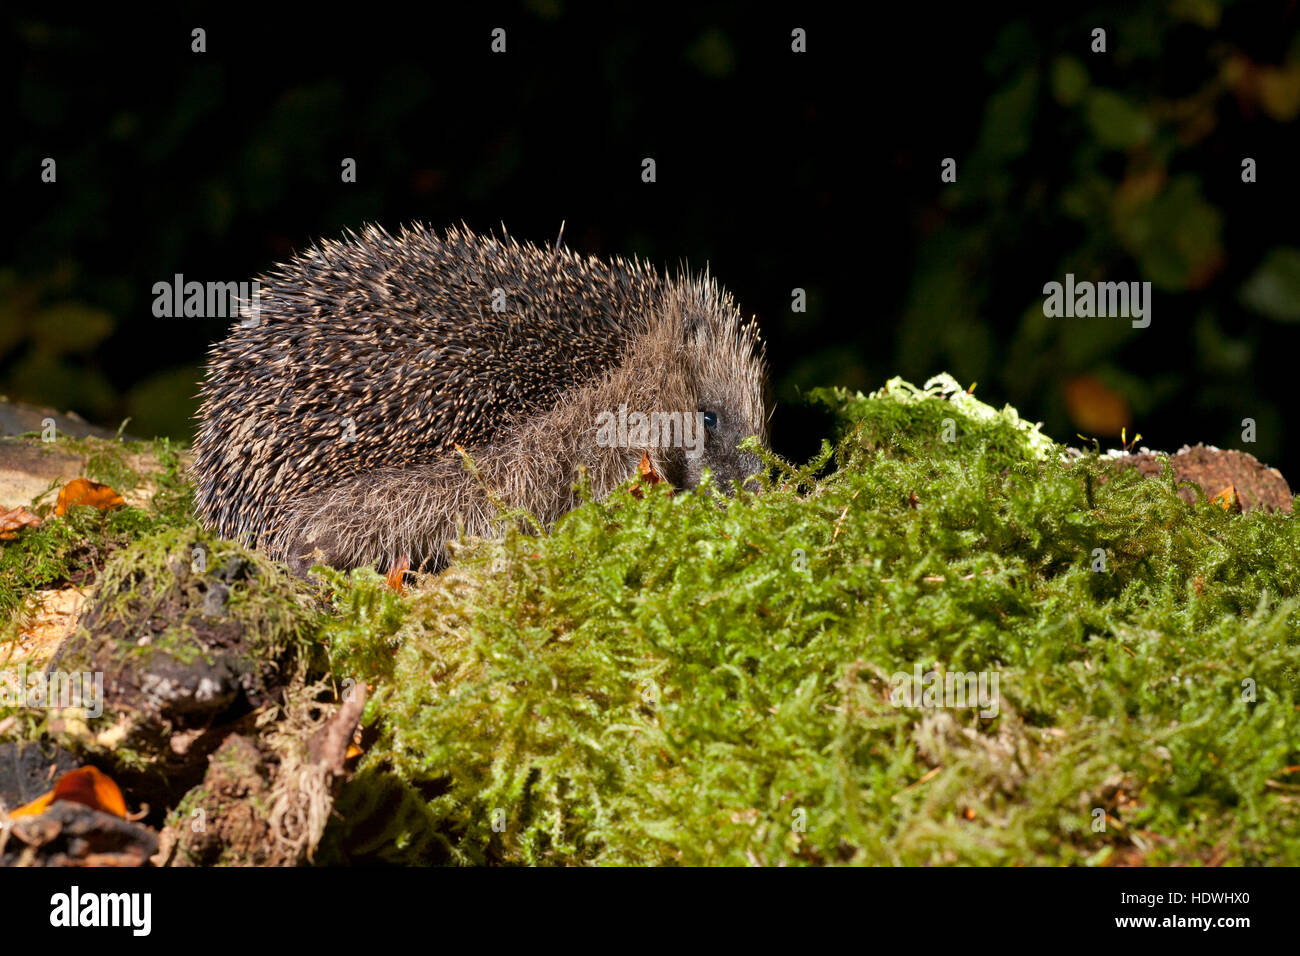 European Hedgehog (Erinaceus europaeus) wild adult in woodland. Powys, Wales. October. - Stock Image